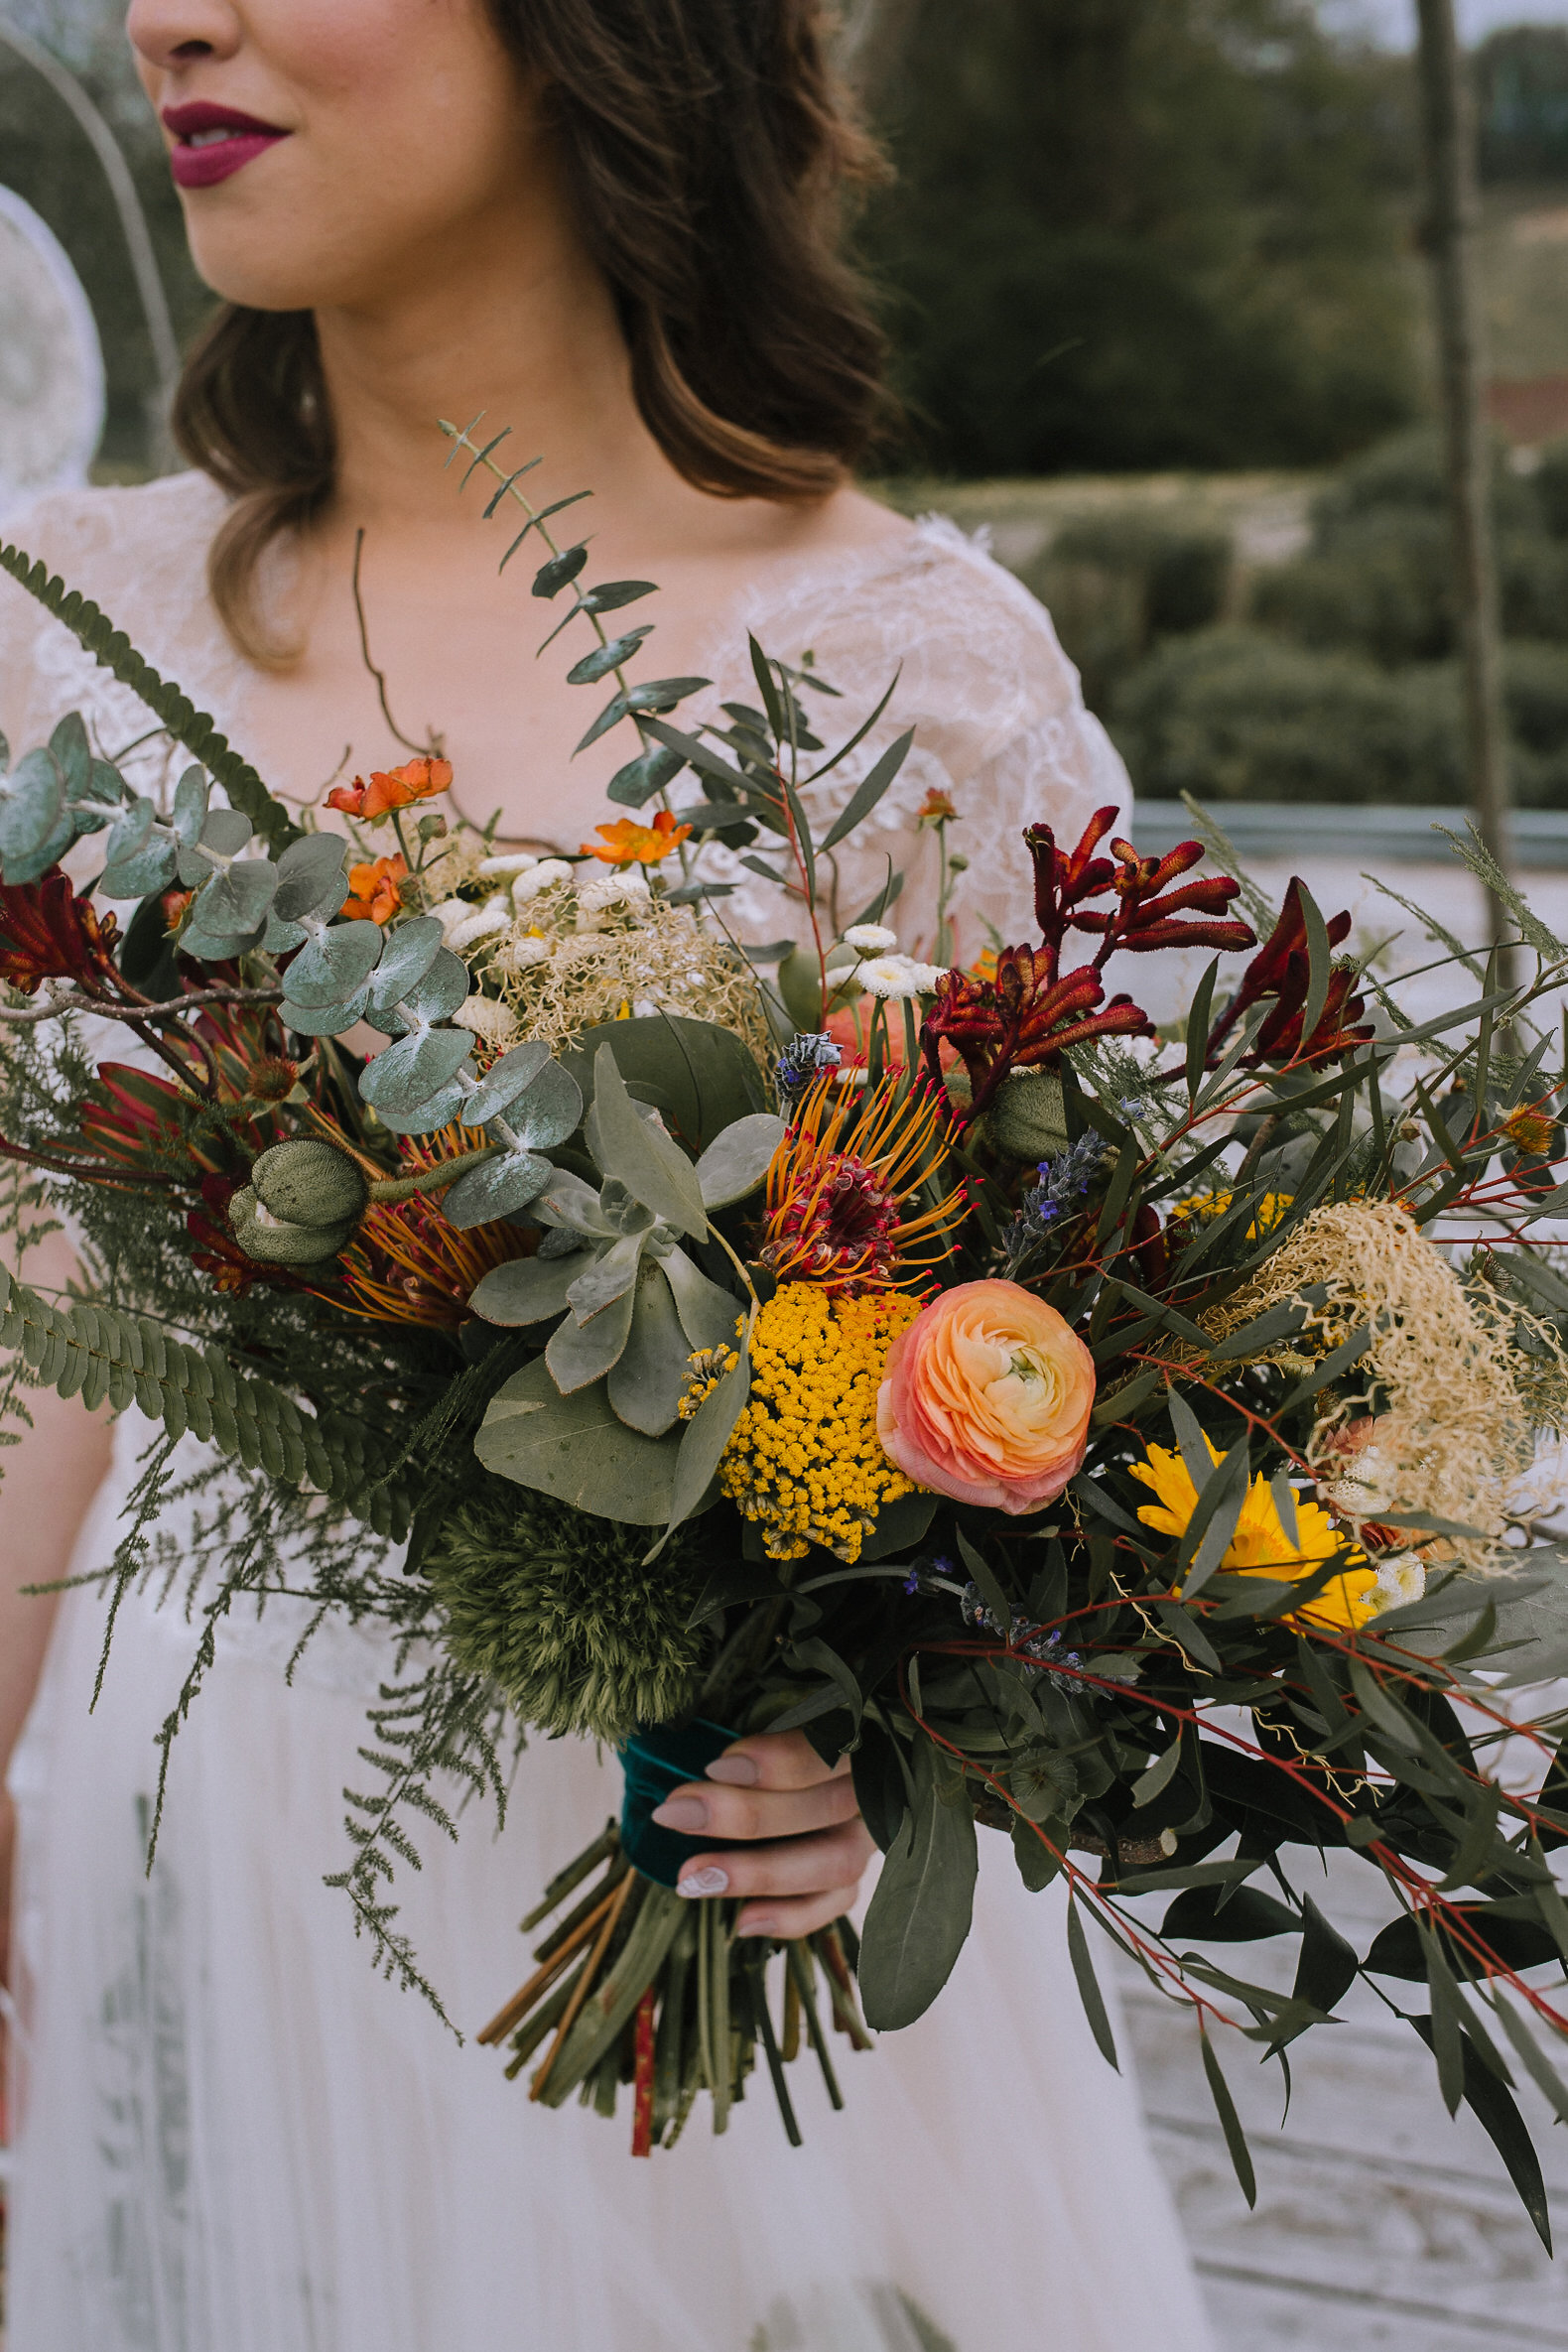 Boho bride with wedding bouquet for fall vintage boho styled shoot designed by exhale events. Get inspired by these gorgeous wedding details at exhale-events.com!